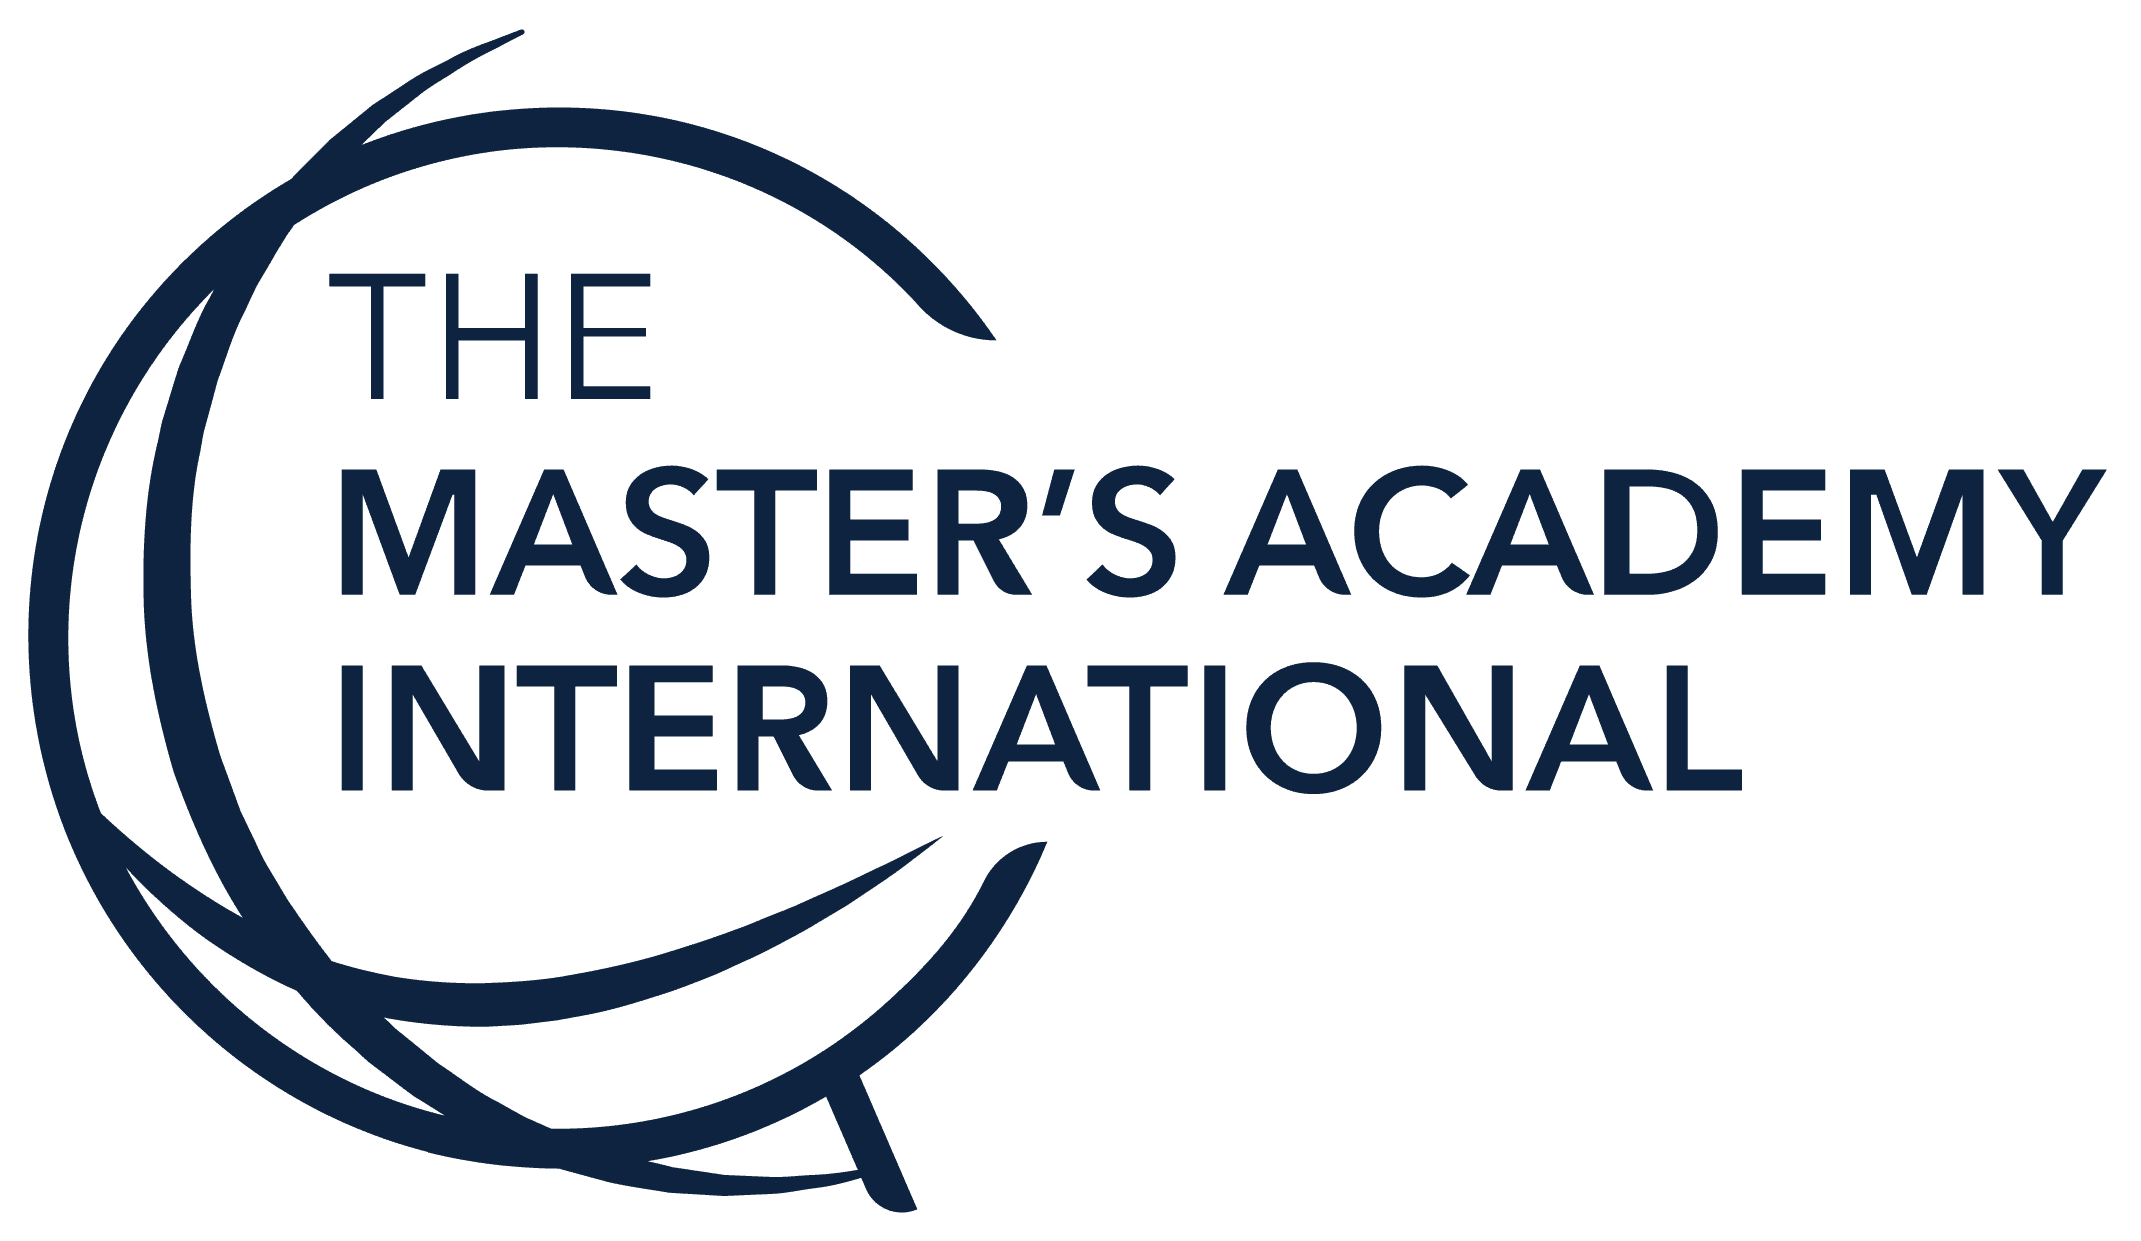 The Master's Academy International